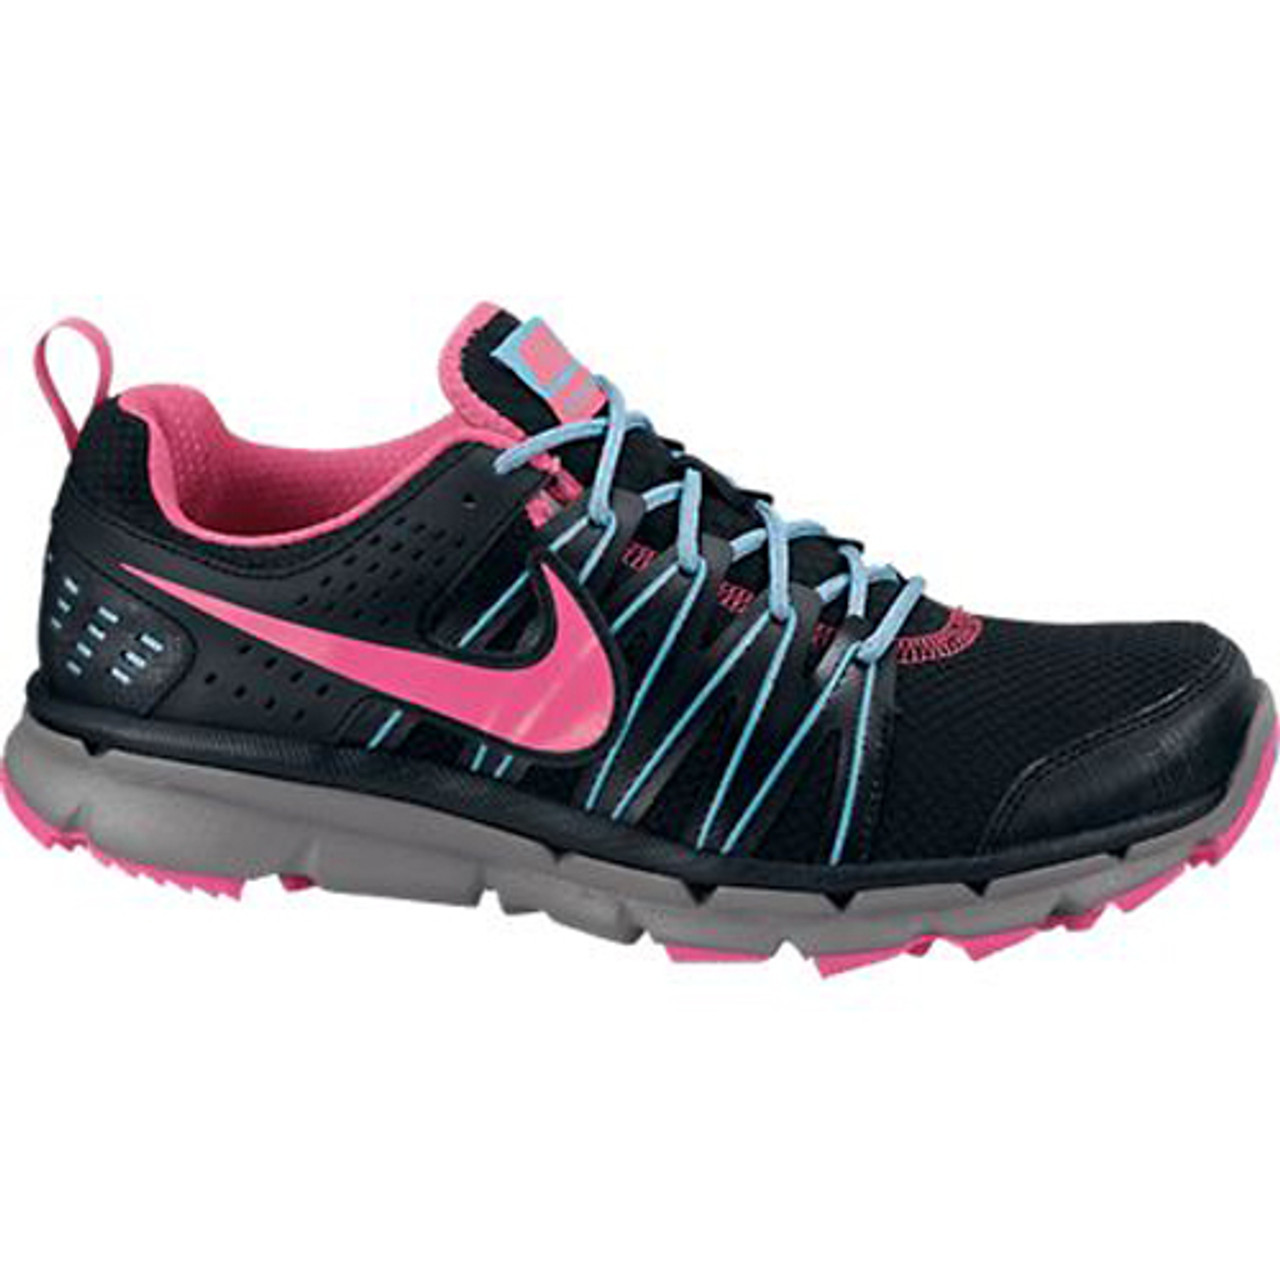 89c22799d00 New Nike Flex Trail 2 Black Pink Ladies Running Shoes - Shop now   Shoolu